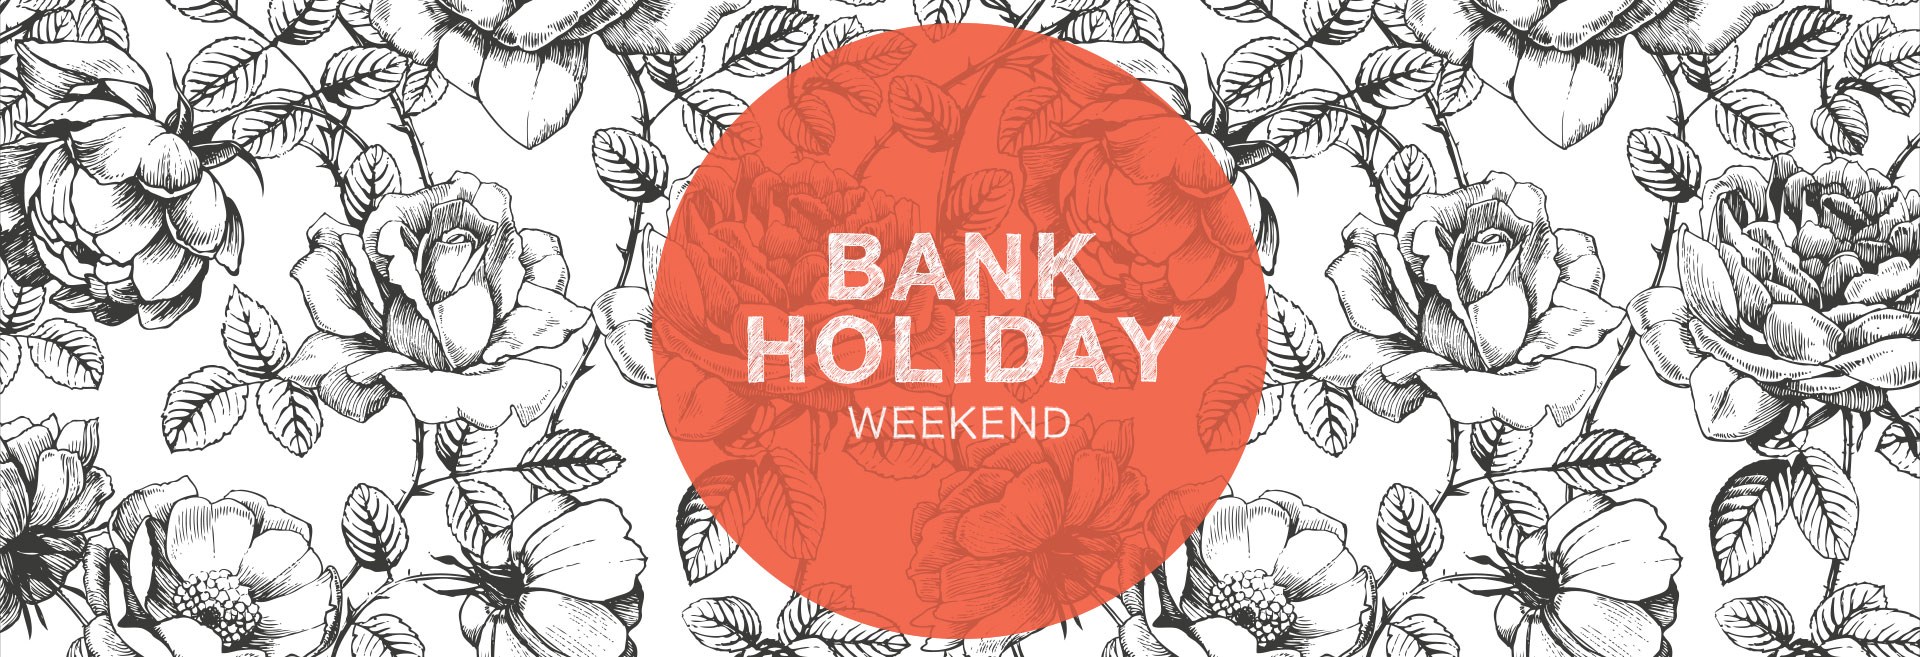 May Bank Holiday at The Southwark Tavern